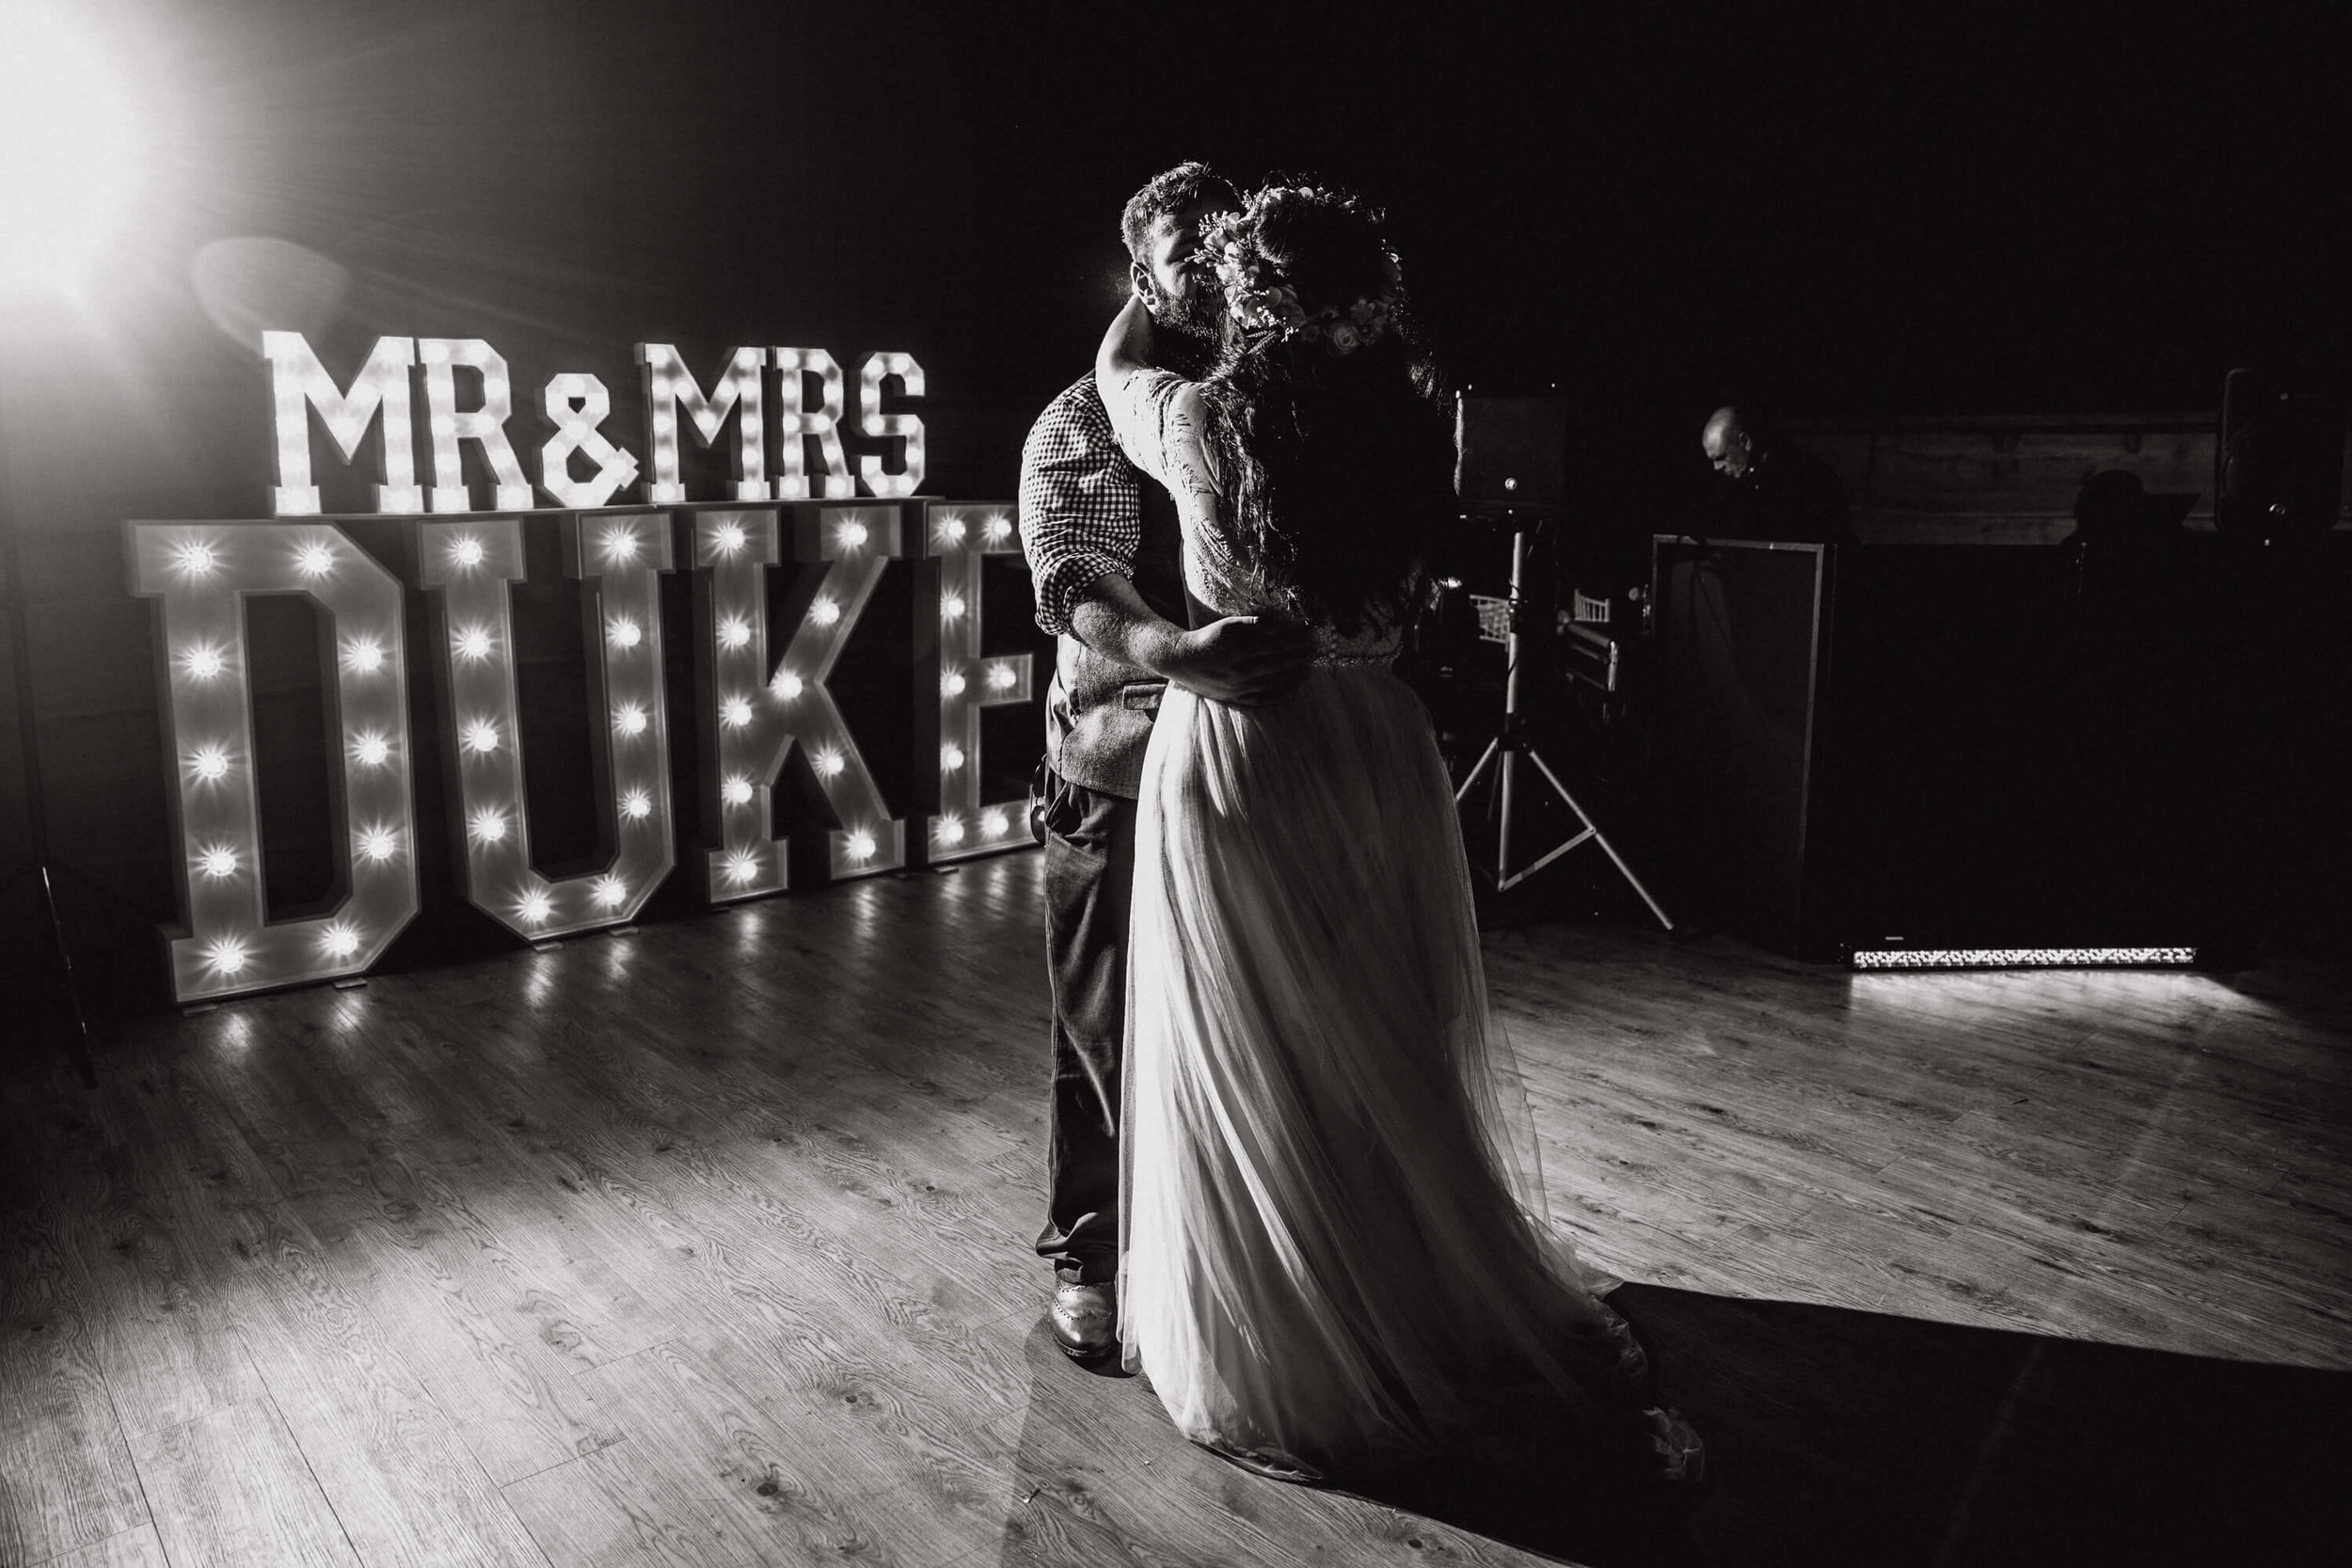 monochrome photograph of first dance and light up lettering